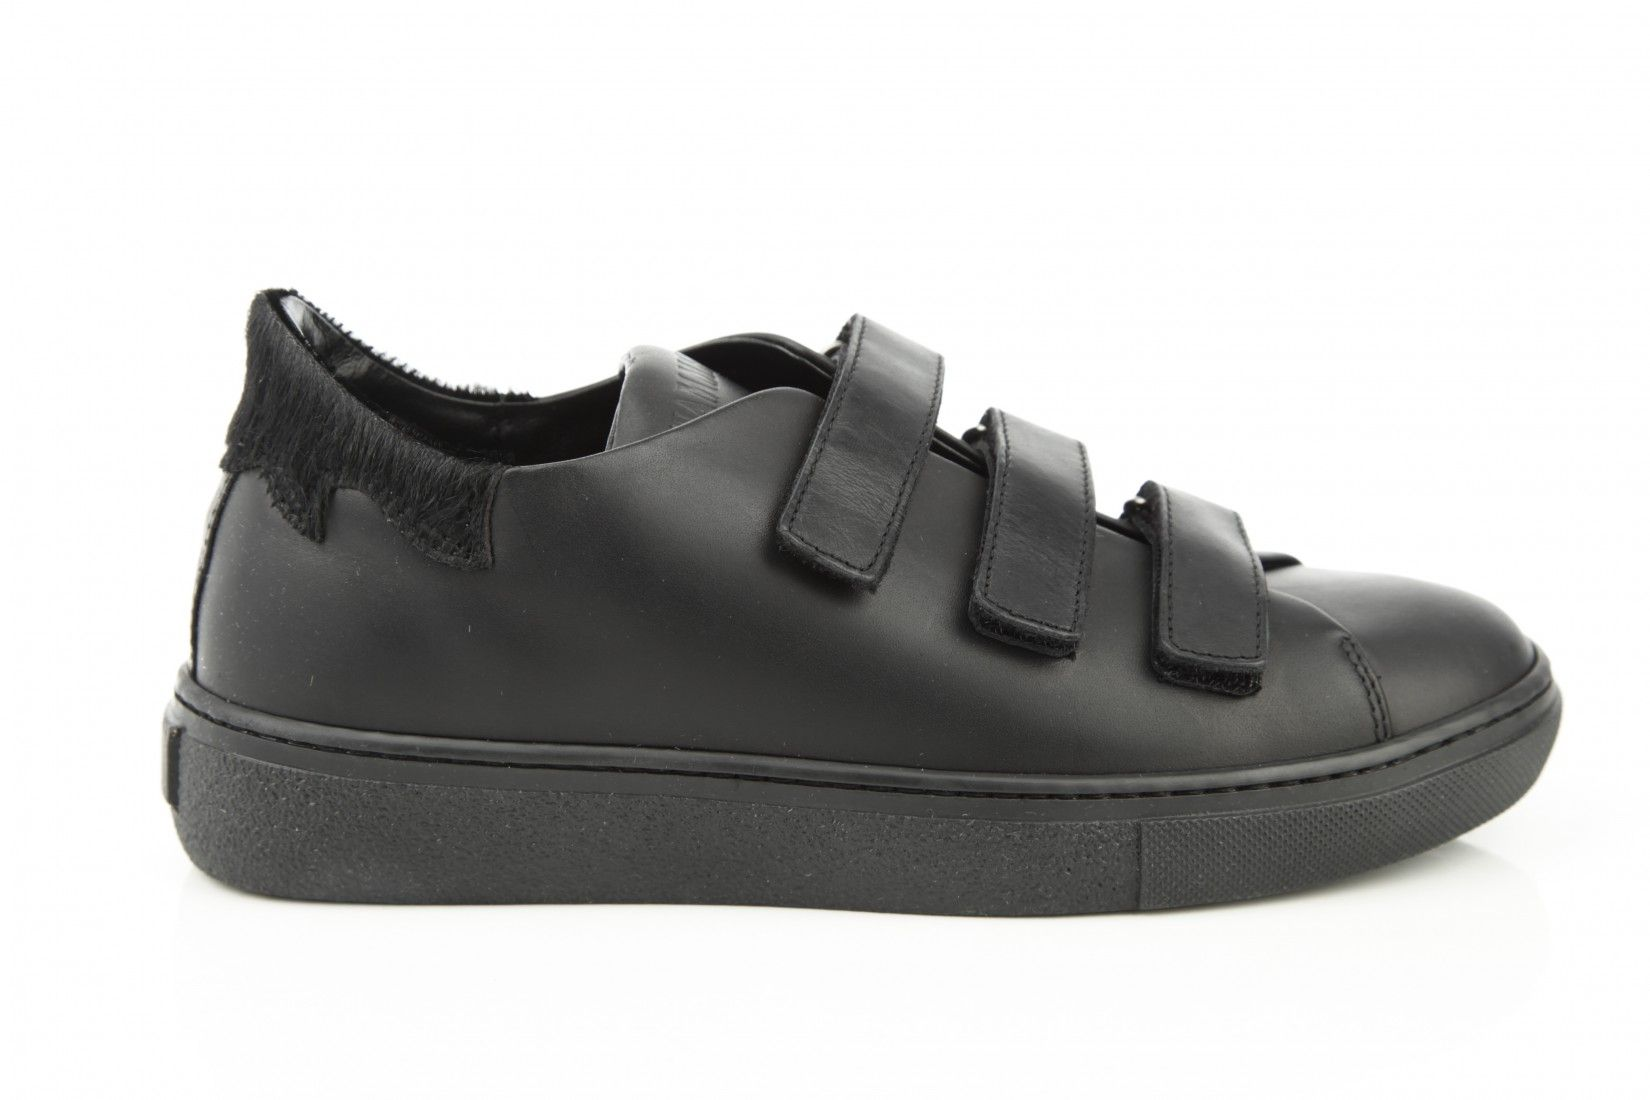 Black sneaker - Fiamme. Available in our store and online shop!